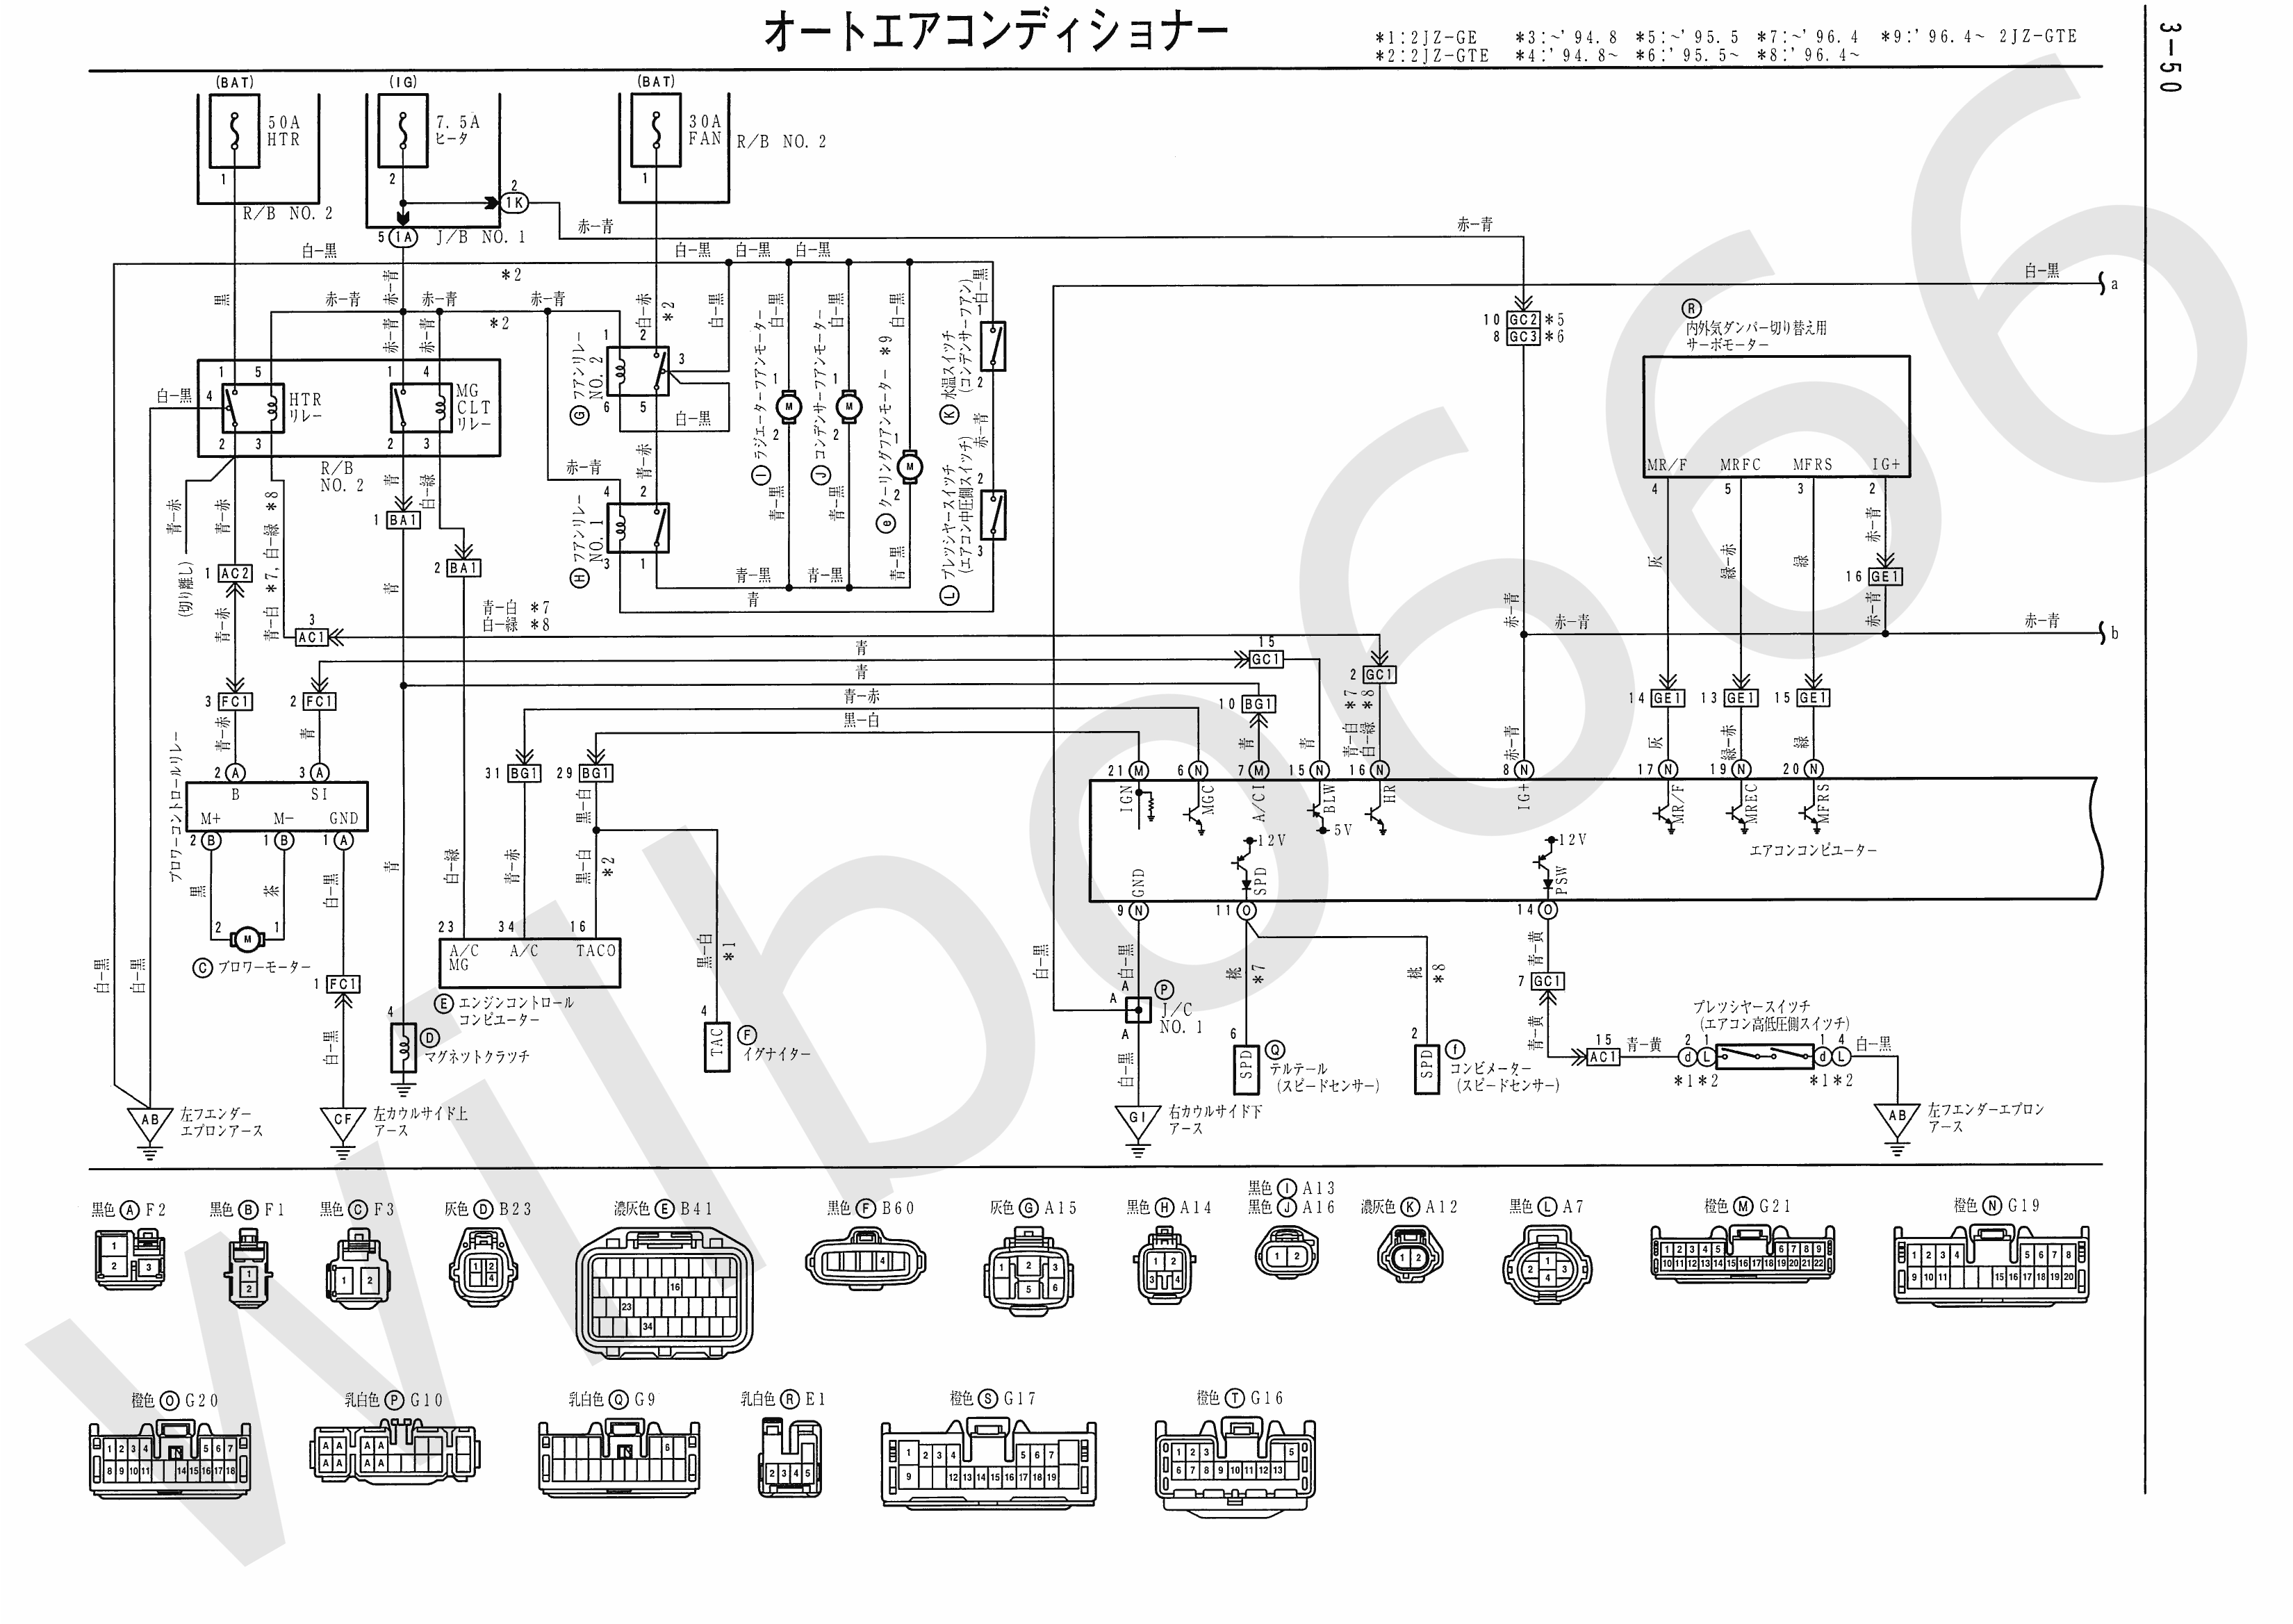 JZA80 Electrical Wiring Diagram 6742505 3 50 wilbo666 2jz ge jza80 supra engine wiring Lexus SC300 Engine at mifinder.co